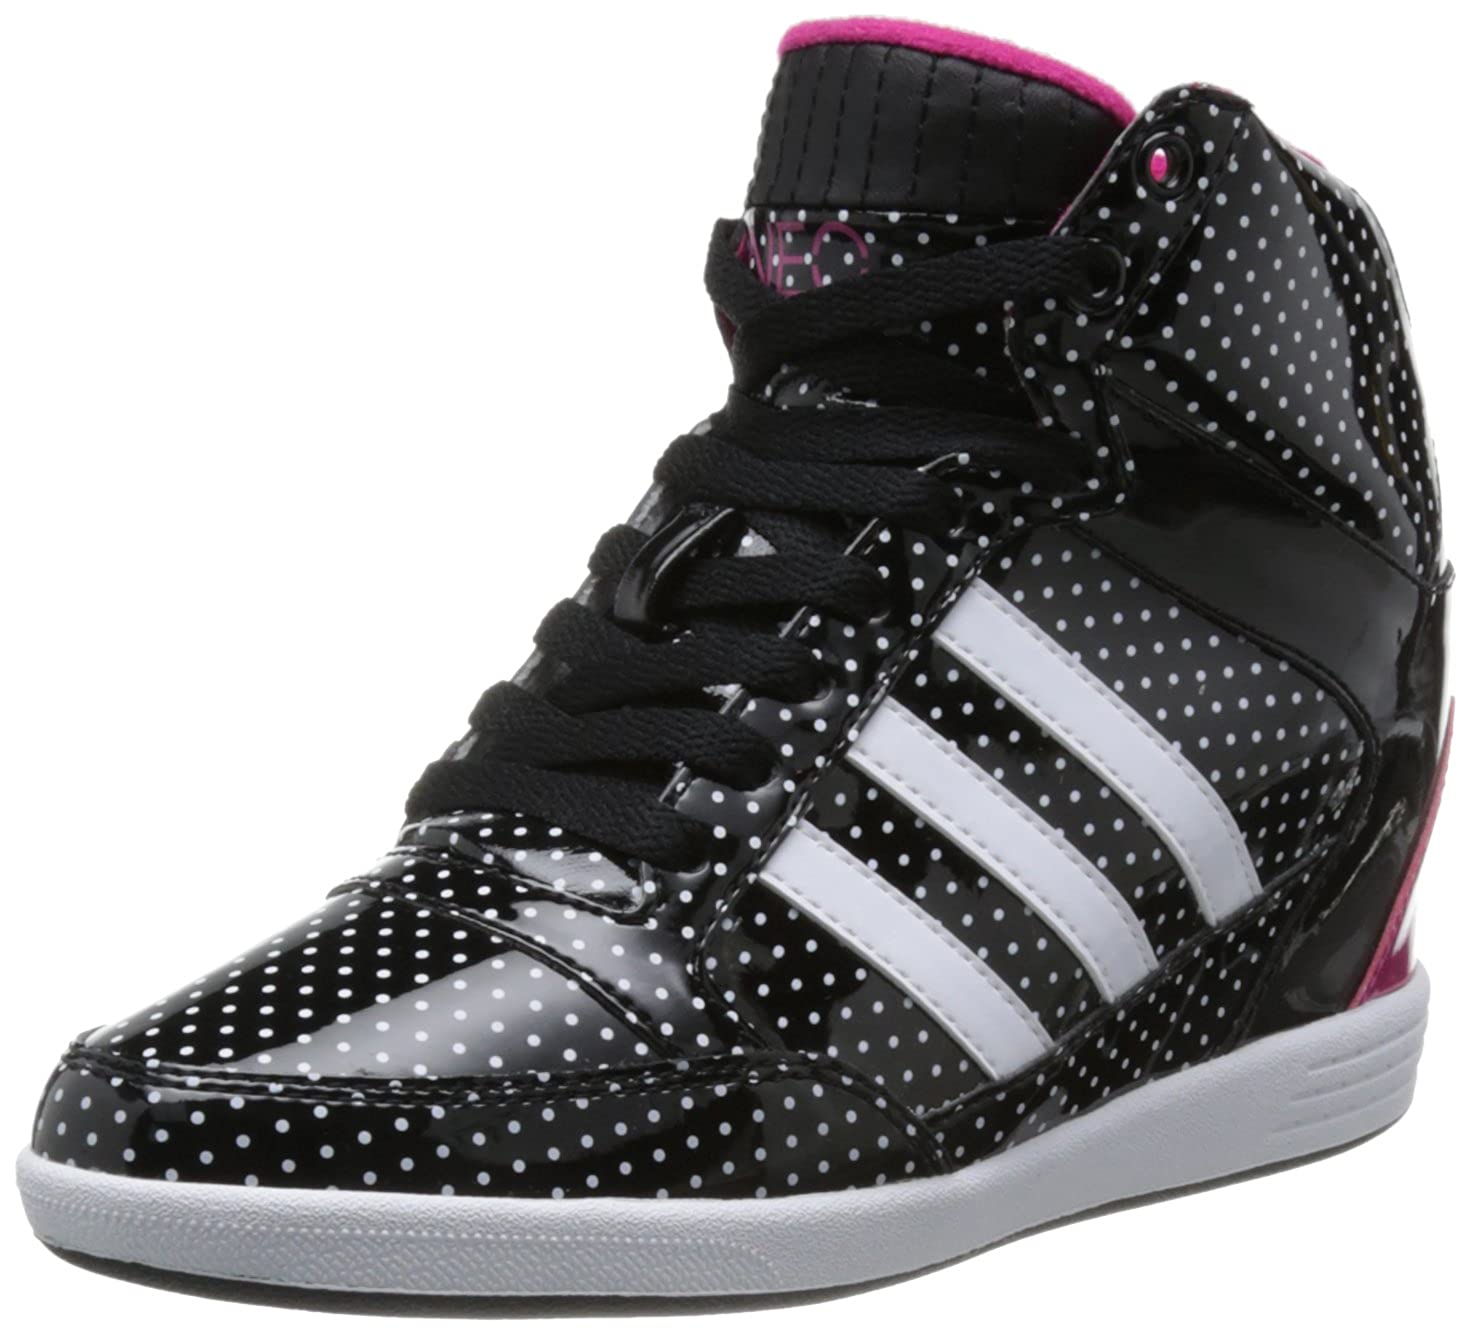 3857b5011ea8e9 adidas femmes chaussures neo weneo super wedge